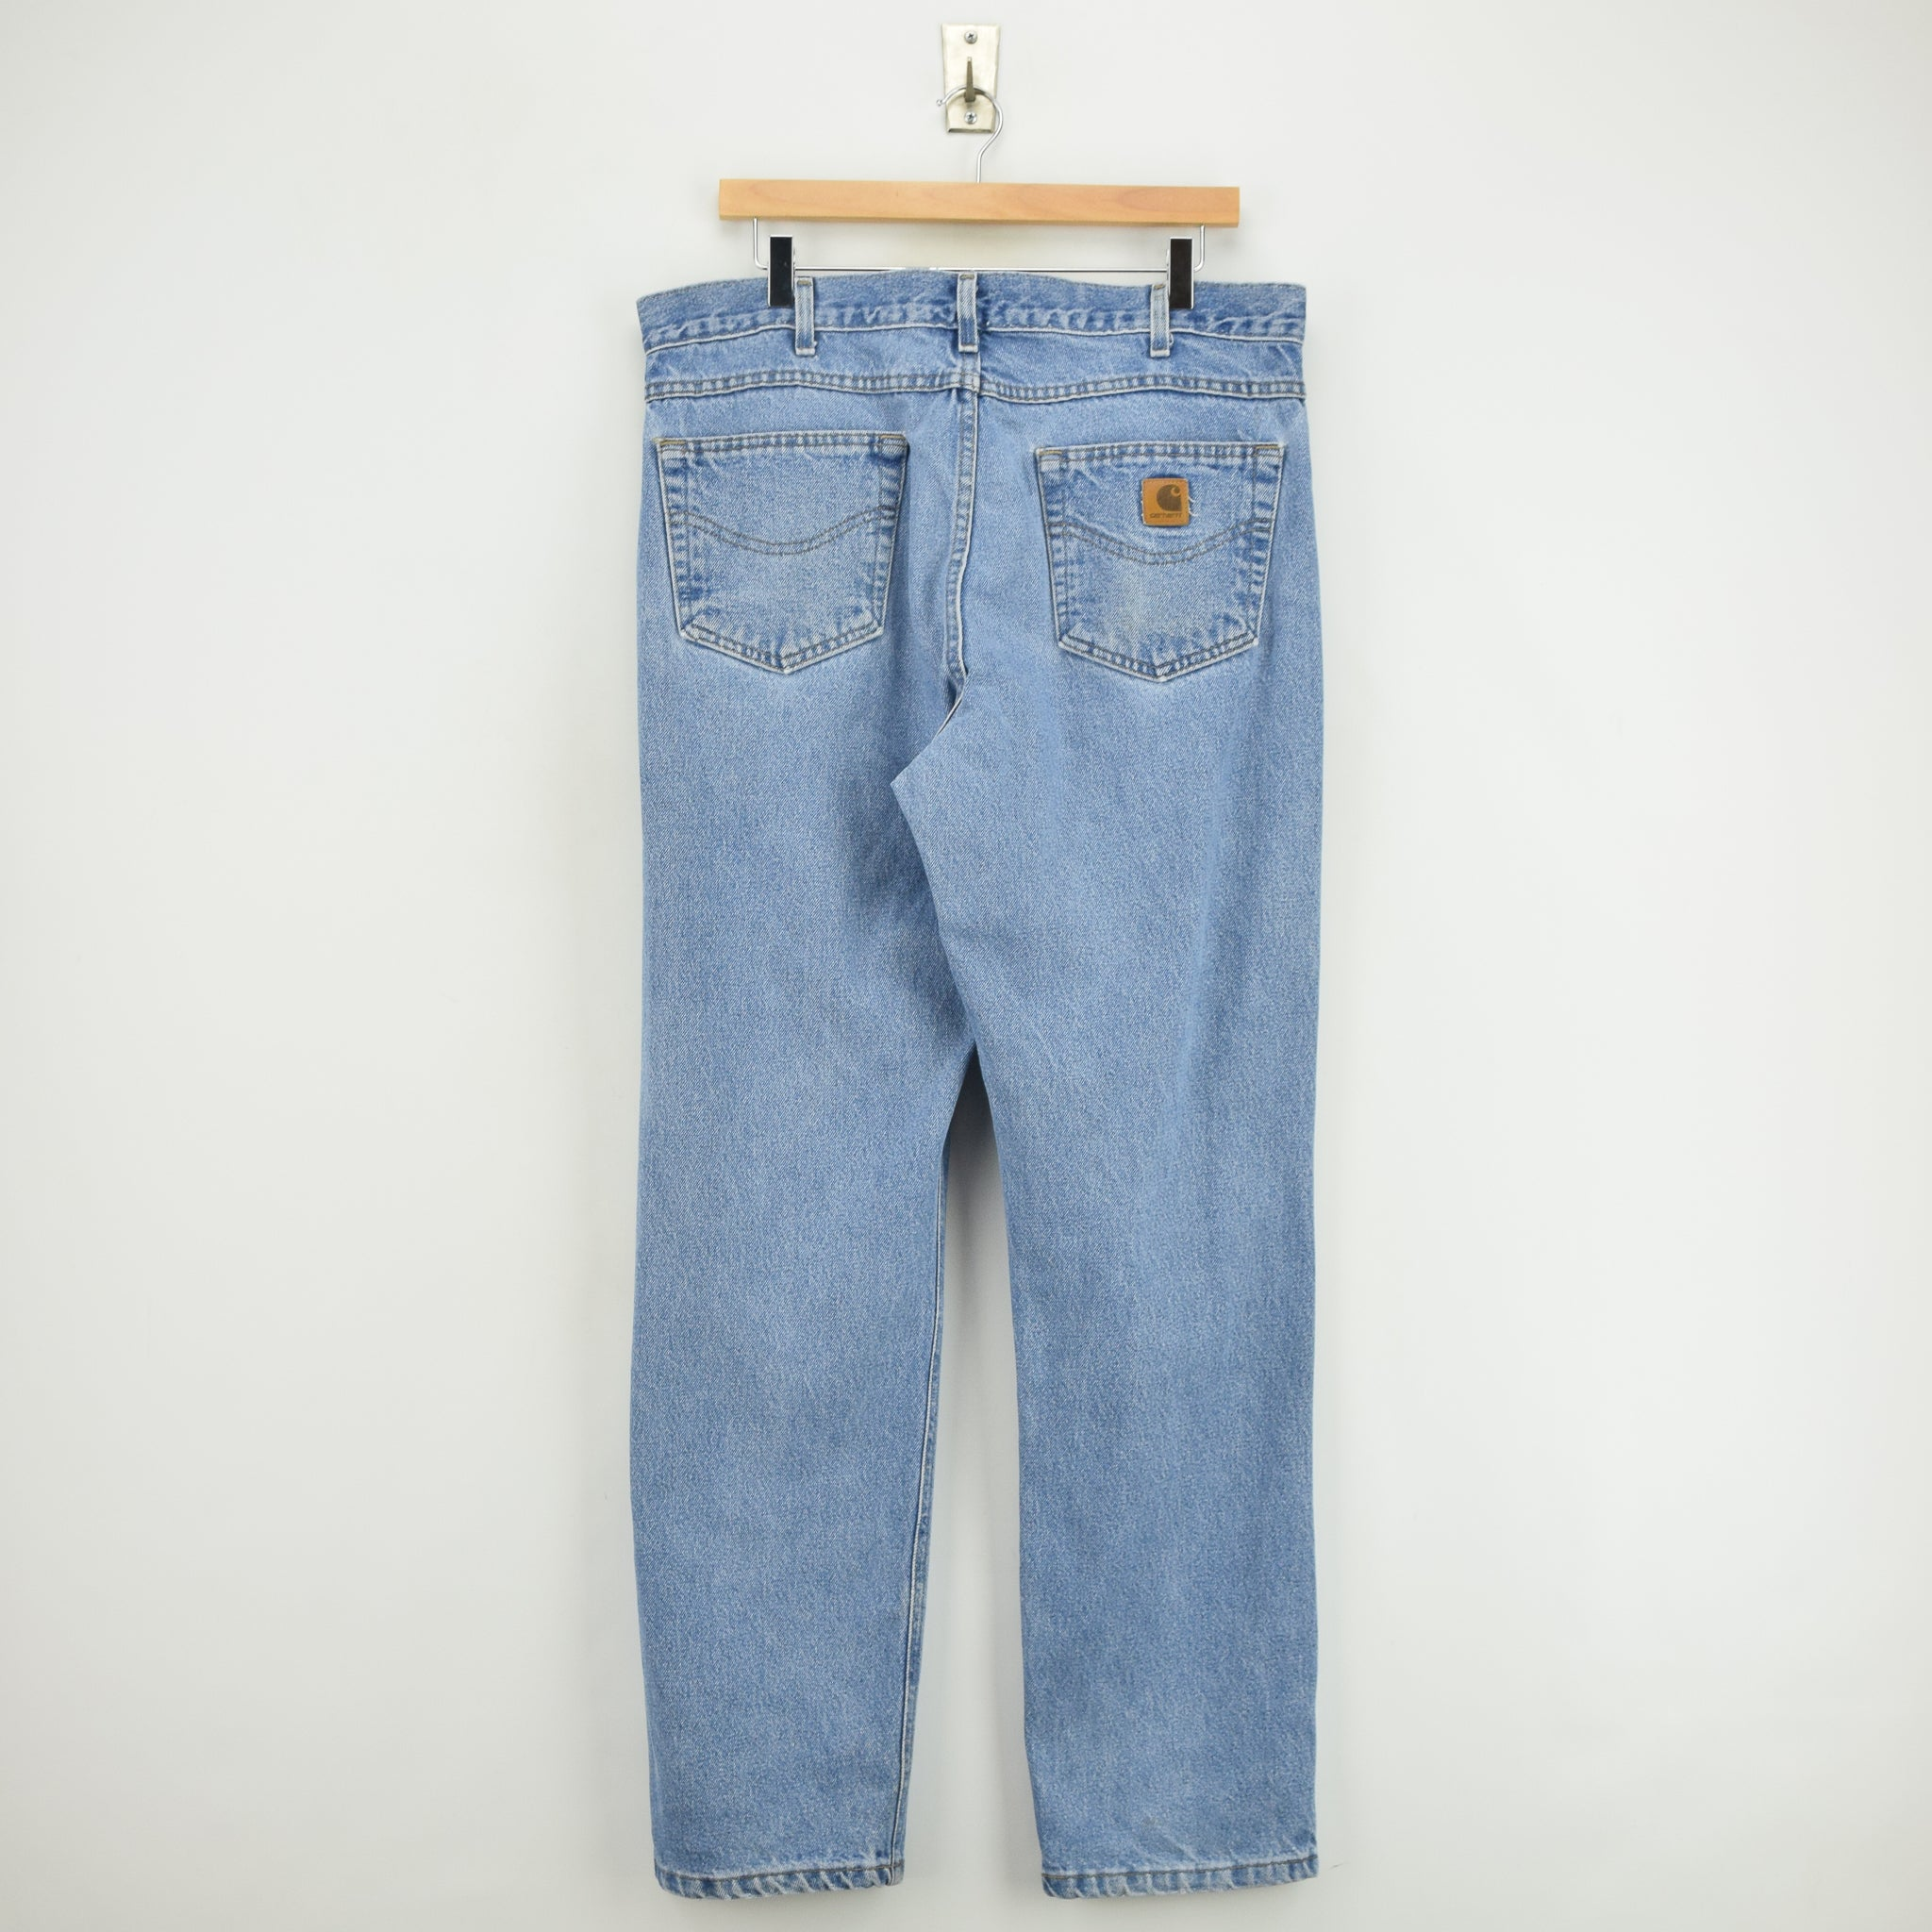 Vintage Carhartt Blue Denim Jeans Work Pants 34 W 32 L back